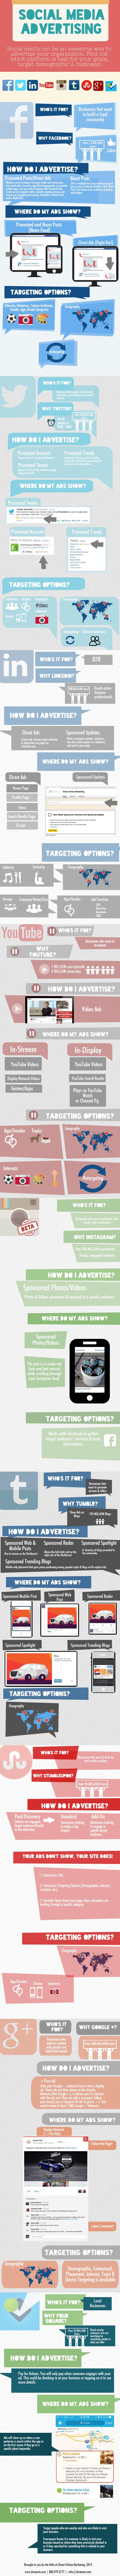 SocialMedia #Marketing: Which Platform is Right for your Business - #infographic